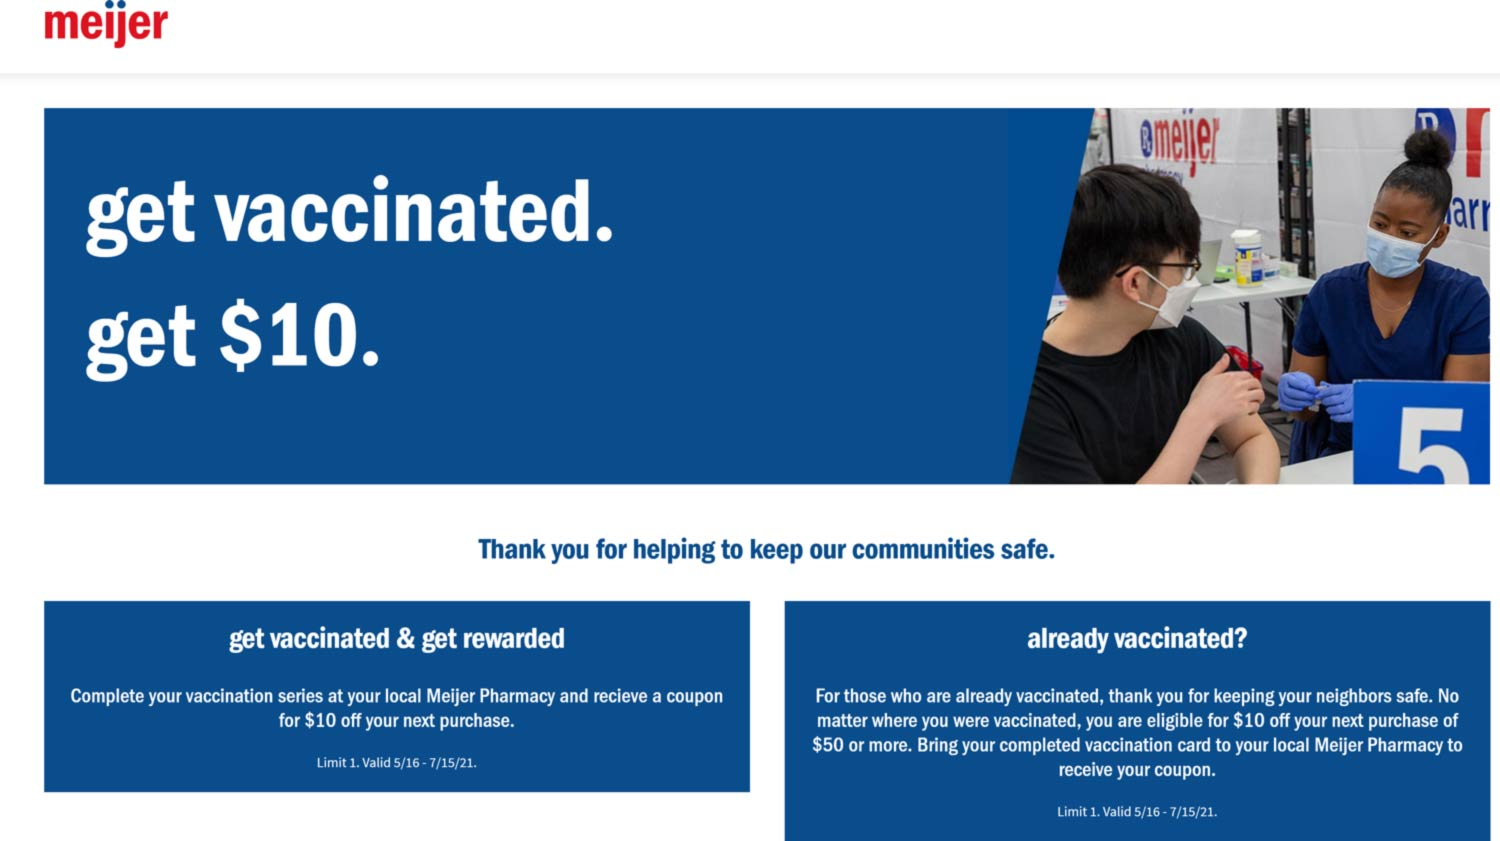 Meijer stores Coupon  $10 off $50 with vaccine card at Meijer #meijer